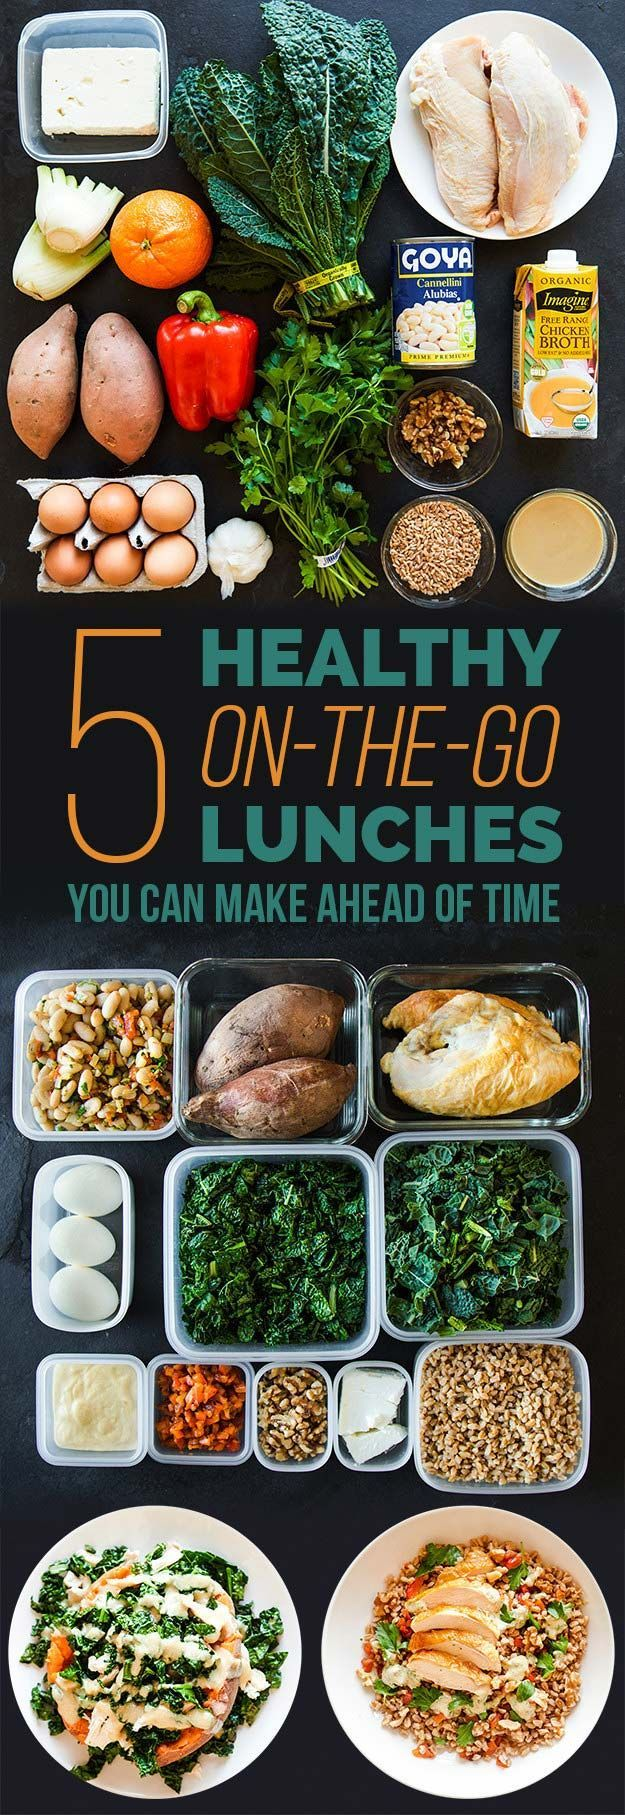 Healthy Lunches for Work - Here's Exactly How To Meal Prep For Lunch This Week- Easy, Quick and Cheap Clean Eating Recipes That You Can Take To Work - Weekly Meals That Are Great for Health Fitness and Weightloss - Simple Low Carb Meals That are High In Protein and Taste Great Cold - Vegetarian Options and Weight Watchers Friendly Ideas that Require No Heat - thegoddess.com/healthy-lunches-for-work